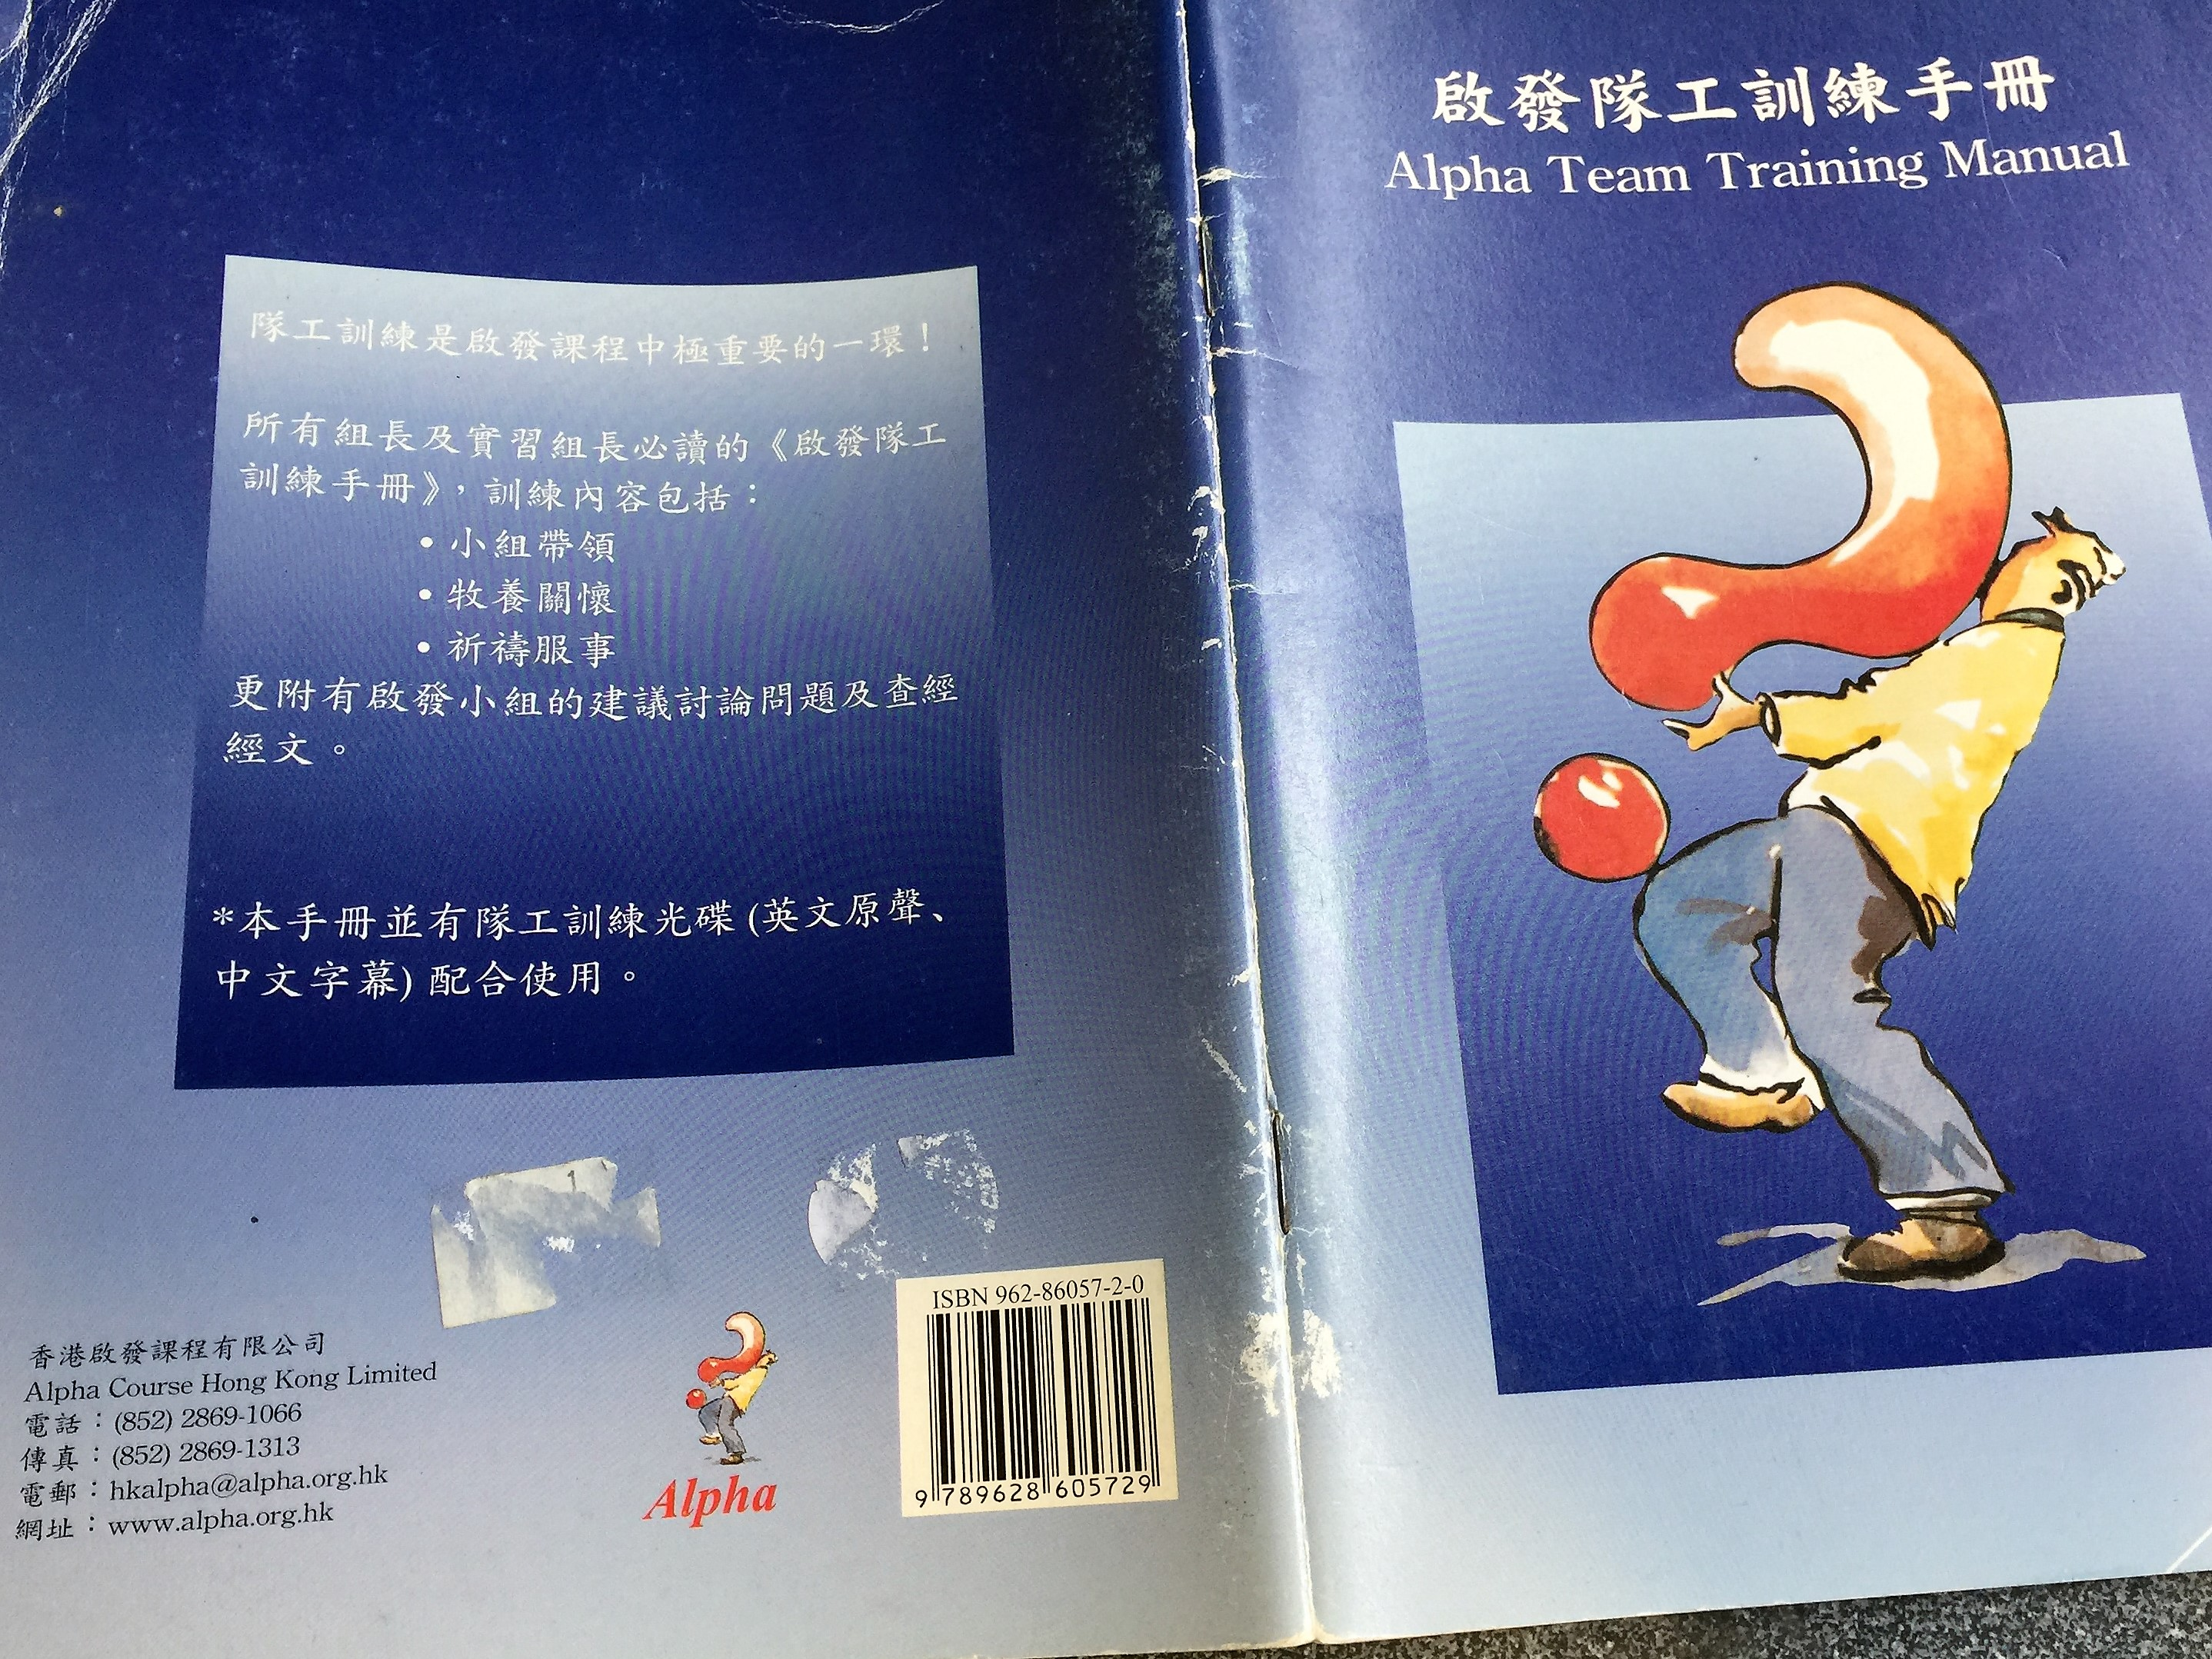 alpha-team-training-manual-traditional-chinese-version-12.jpg